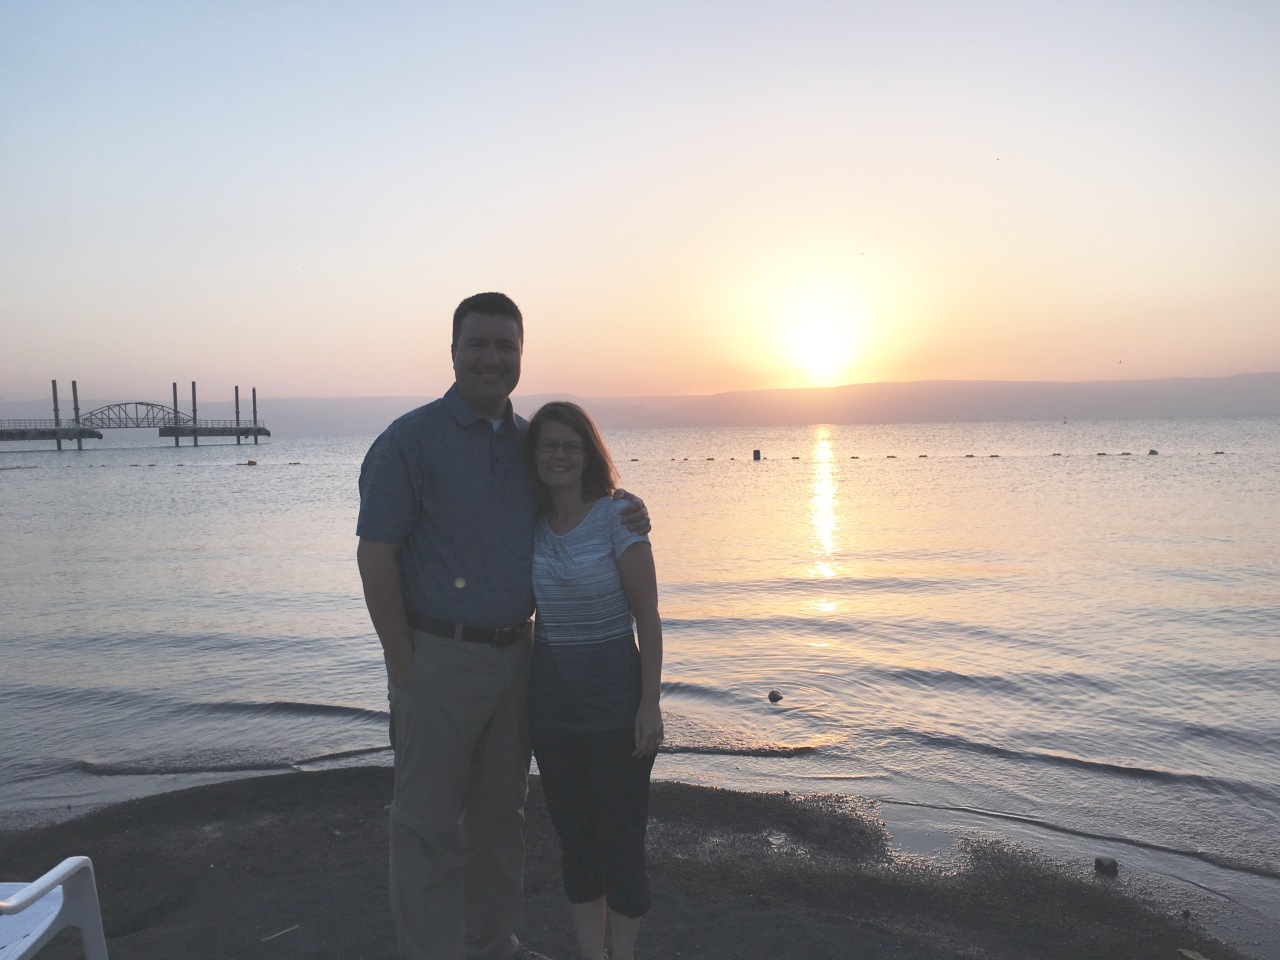 Kimberly and I at sunrise on the Sea of Galilee before visiting Caesarea Philippi